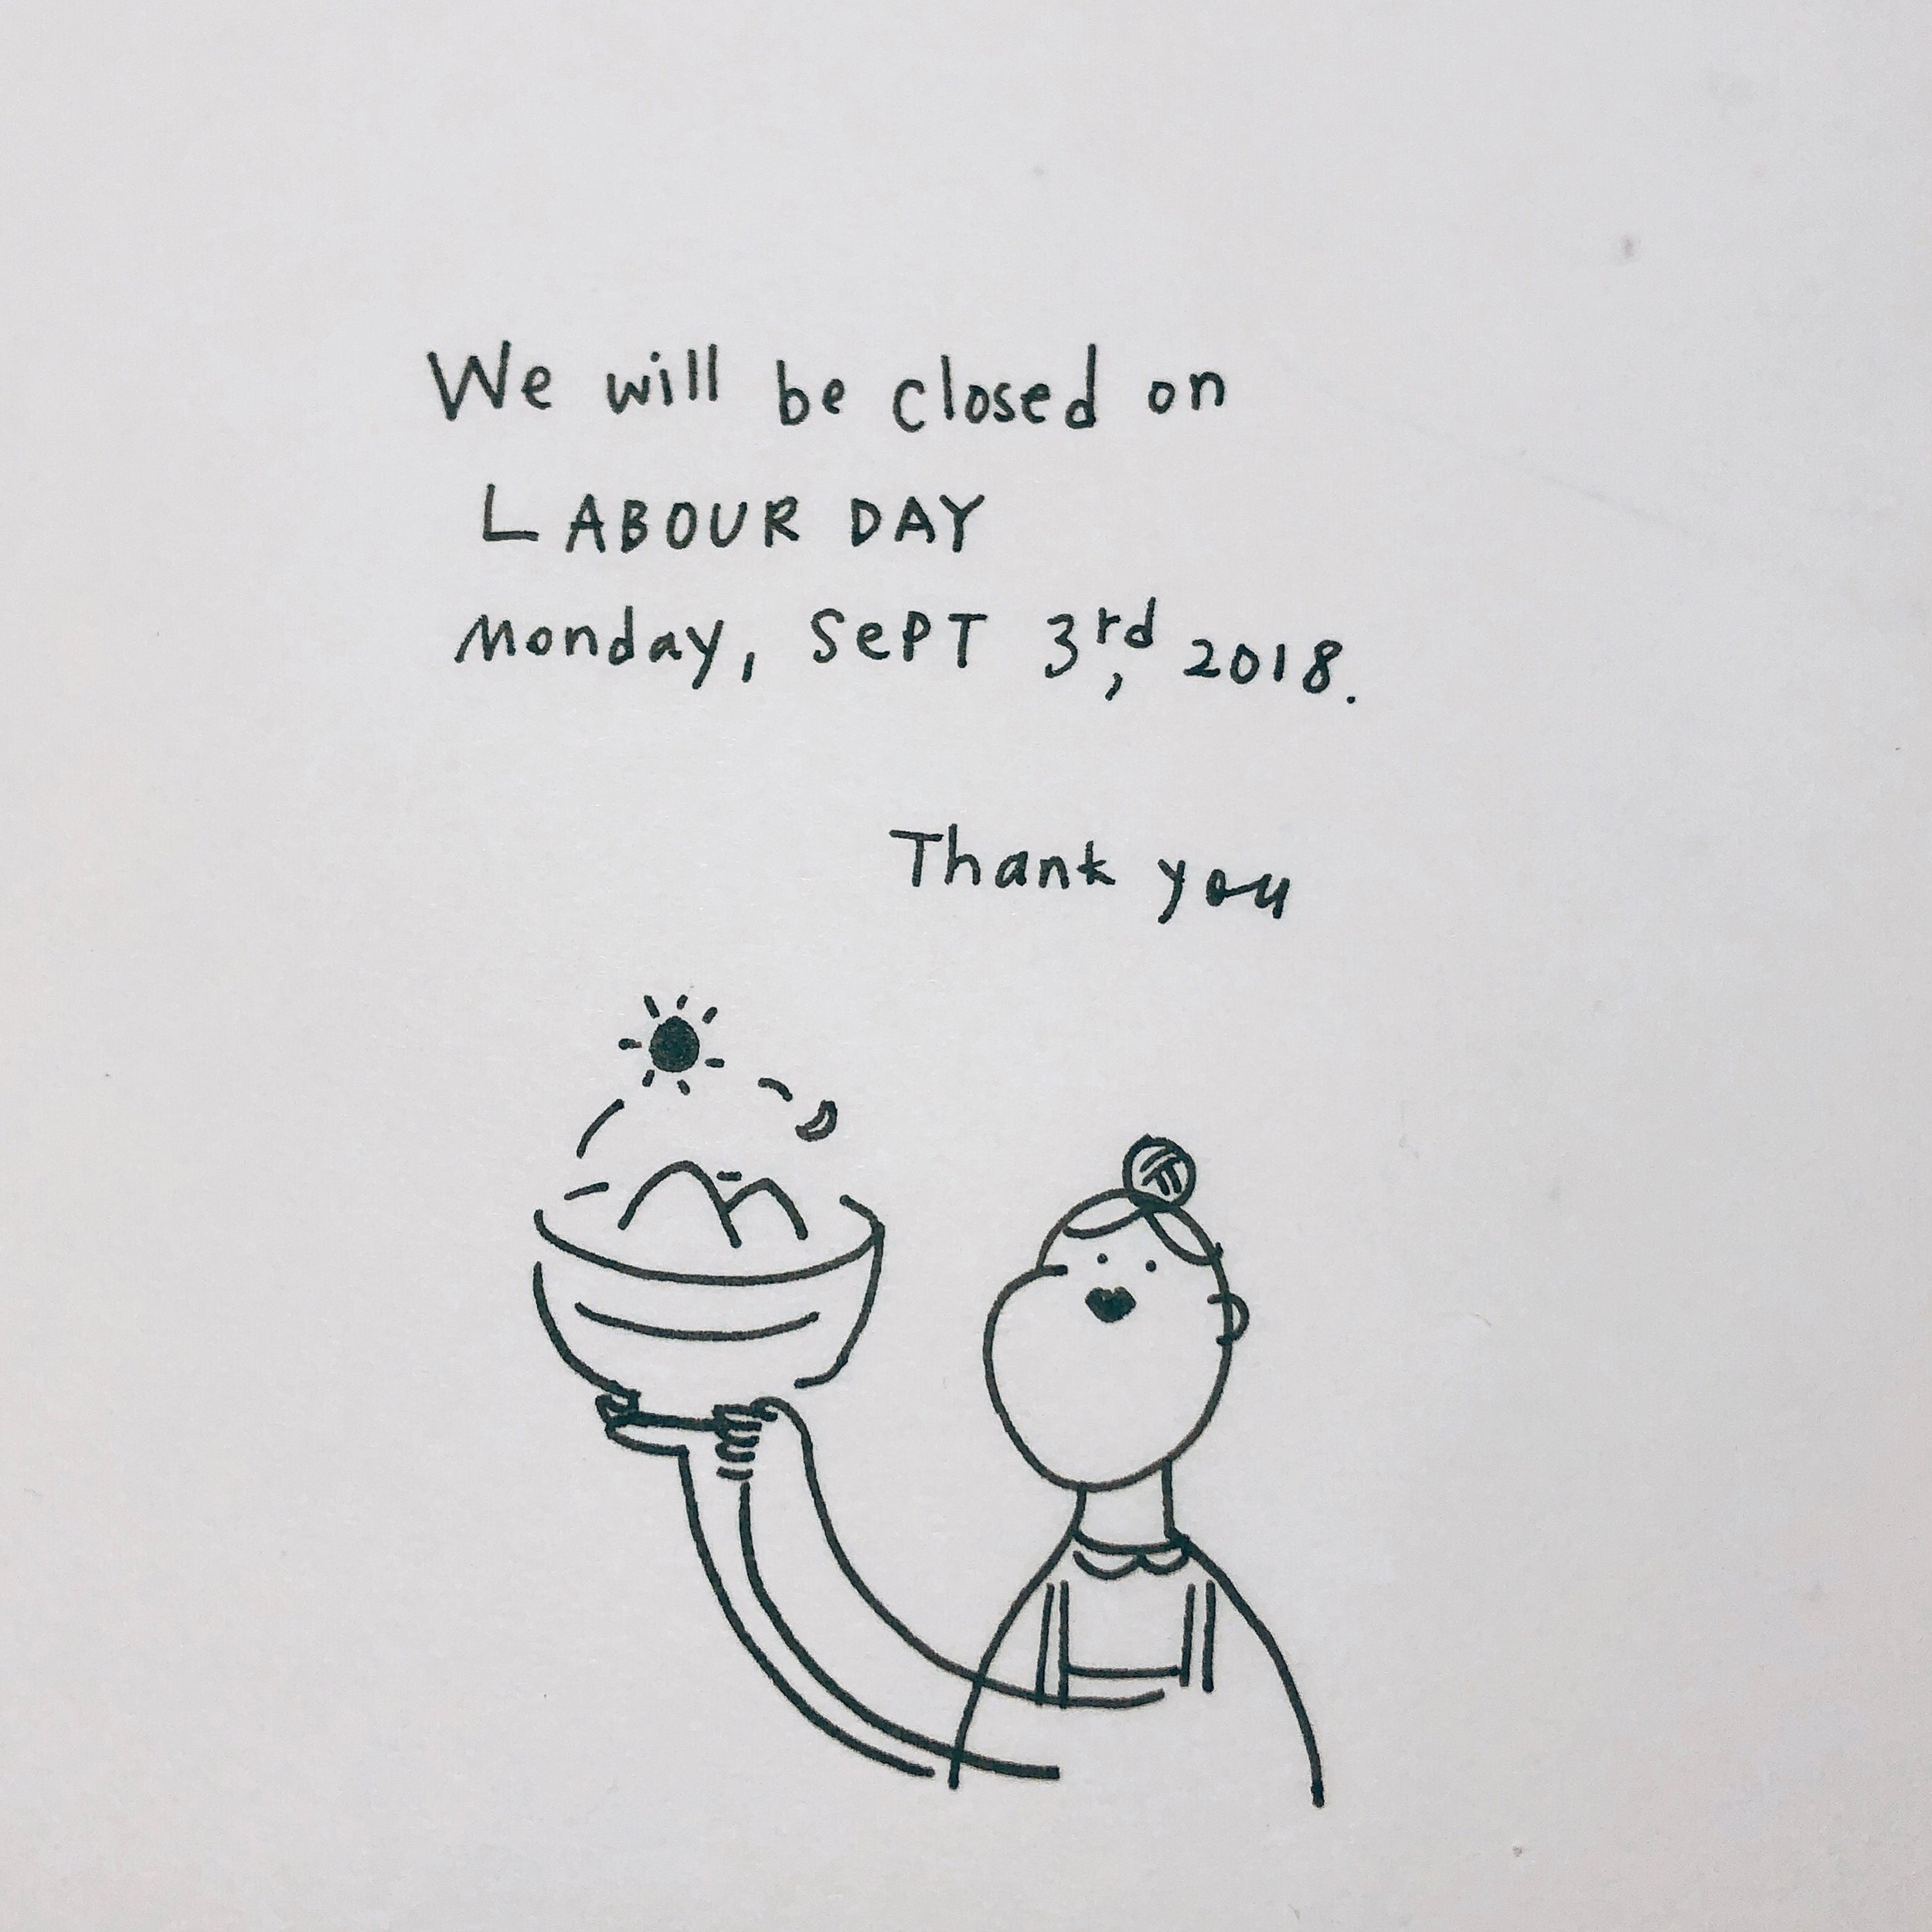 We are open on SAT & SUN from 12 - 9 as usual, and we will be closed on Labour day, Sept 3rd, Monday. Thank you.